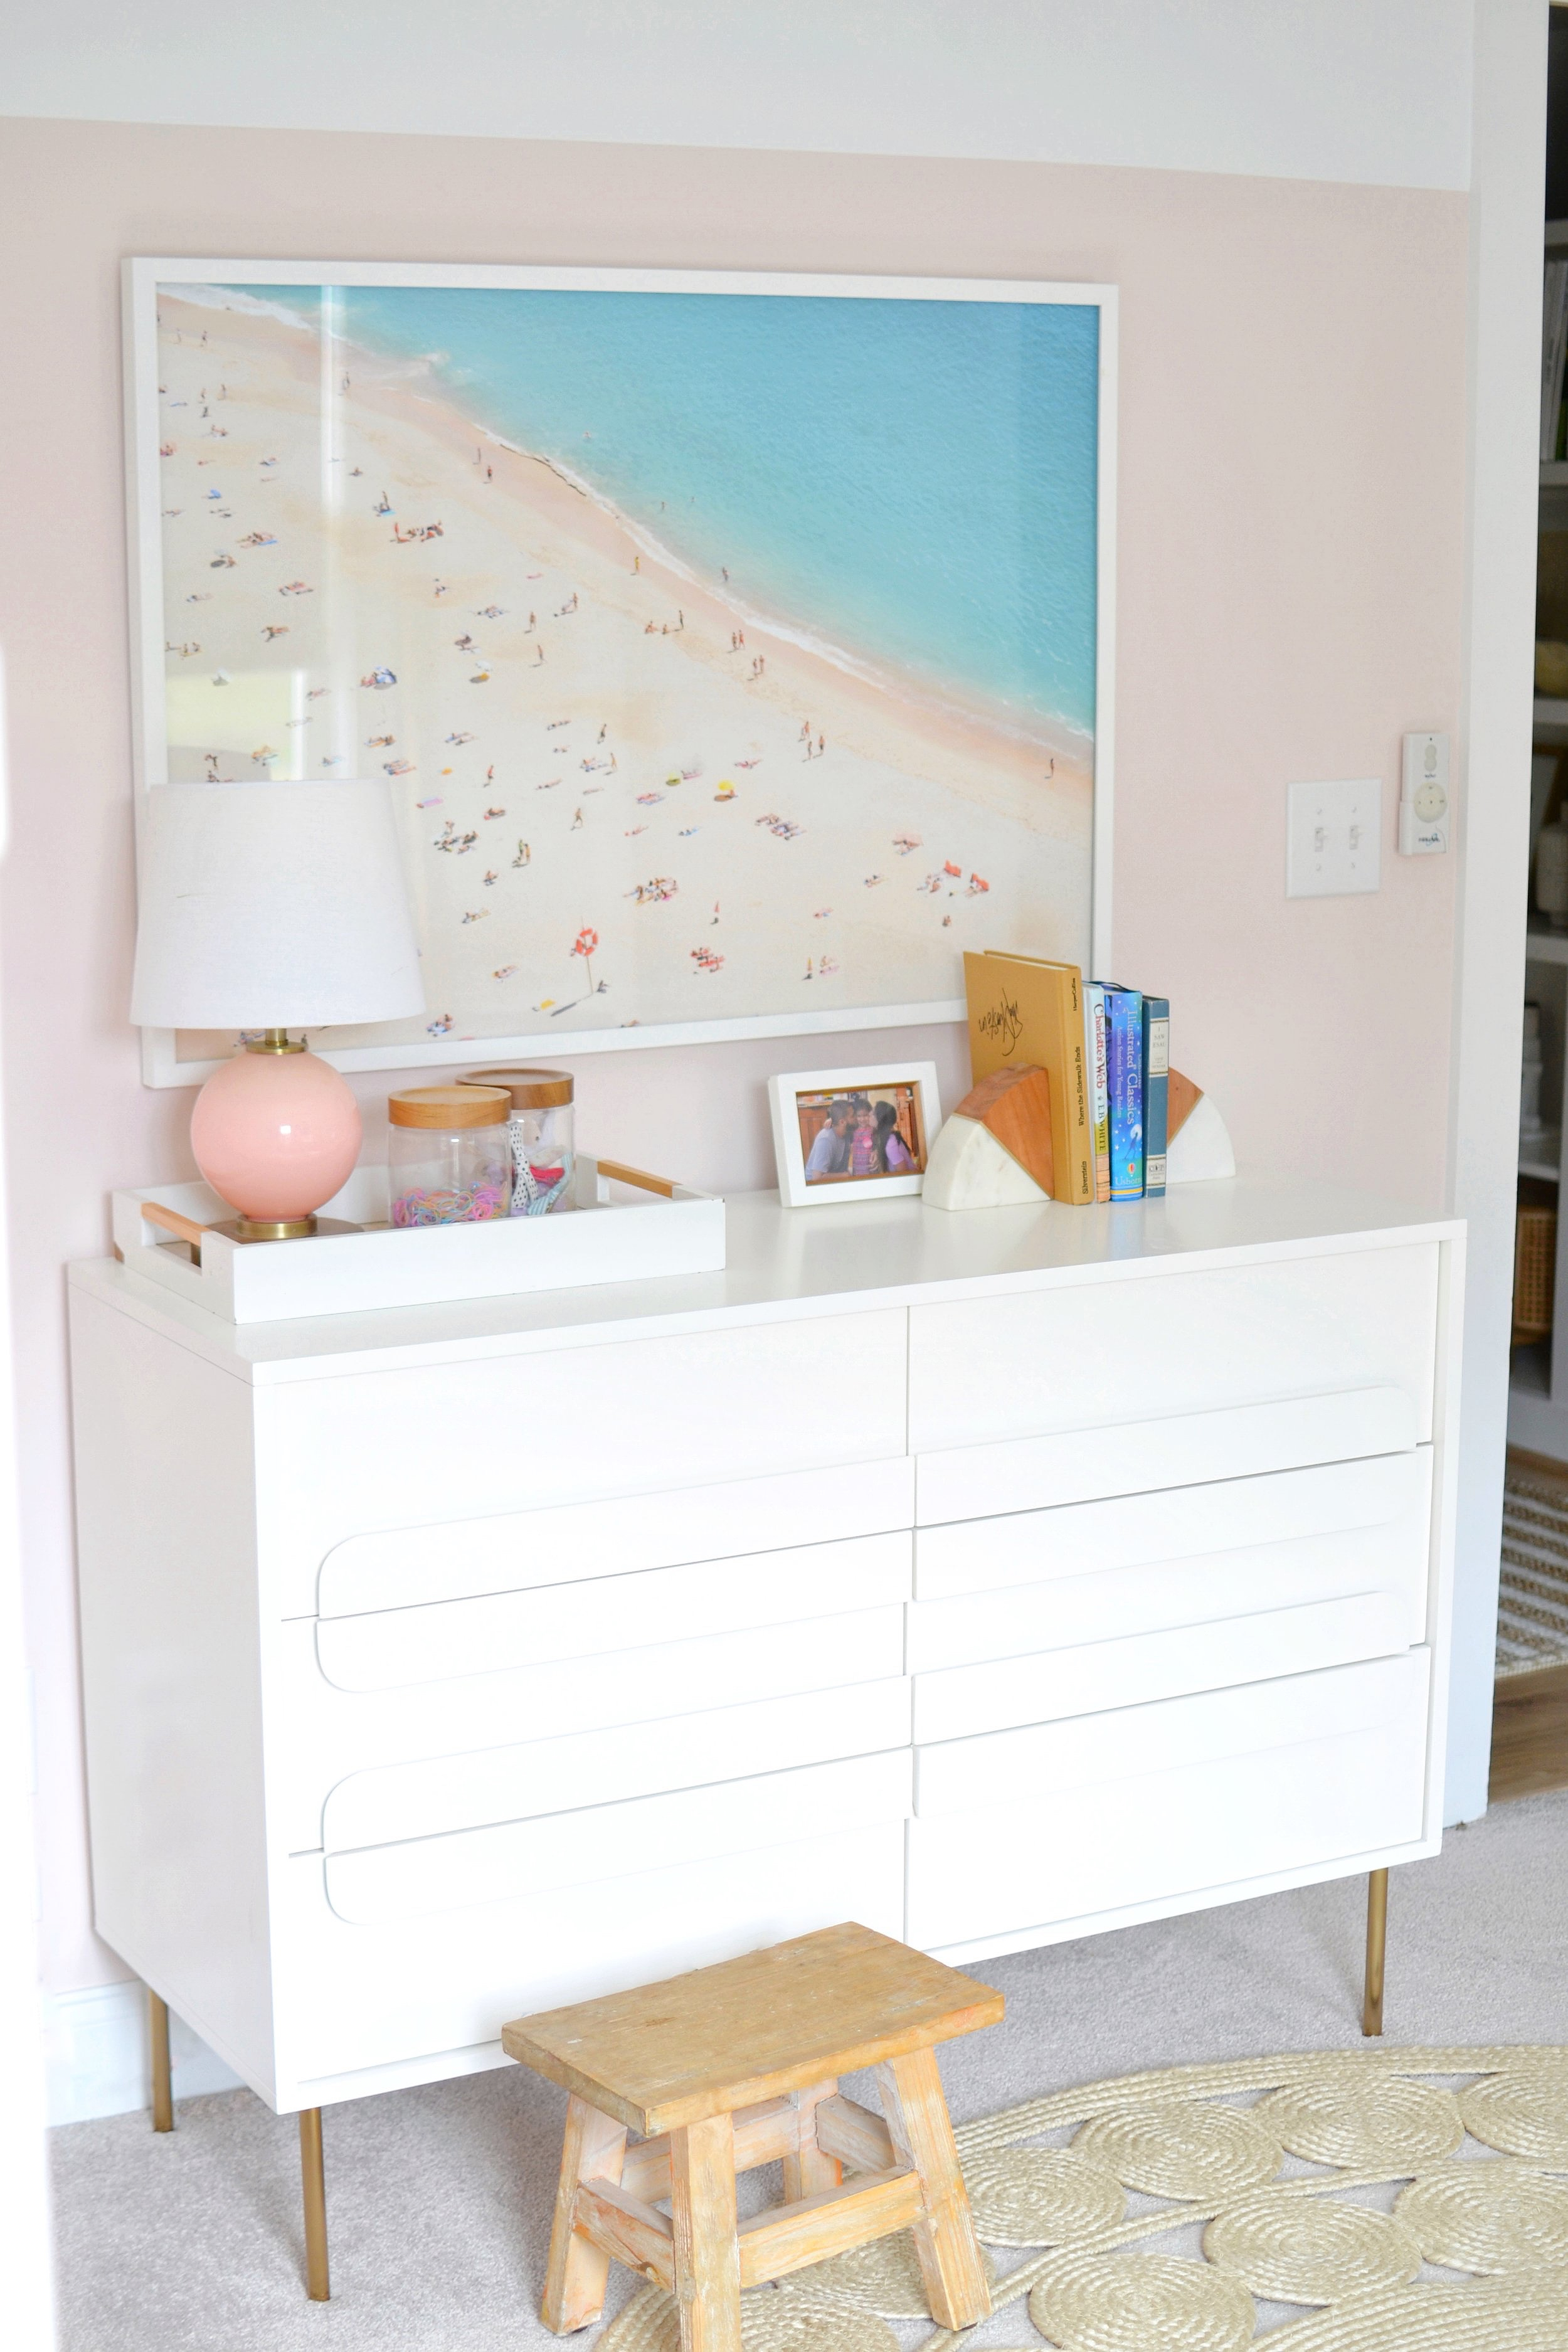 How to Affordably Own Your Own Oversized Beach Art